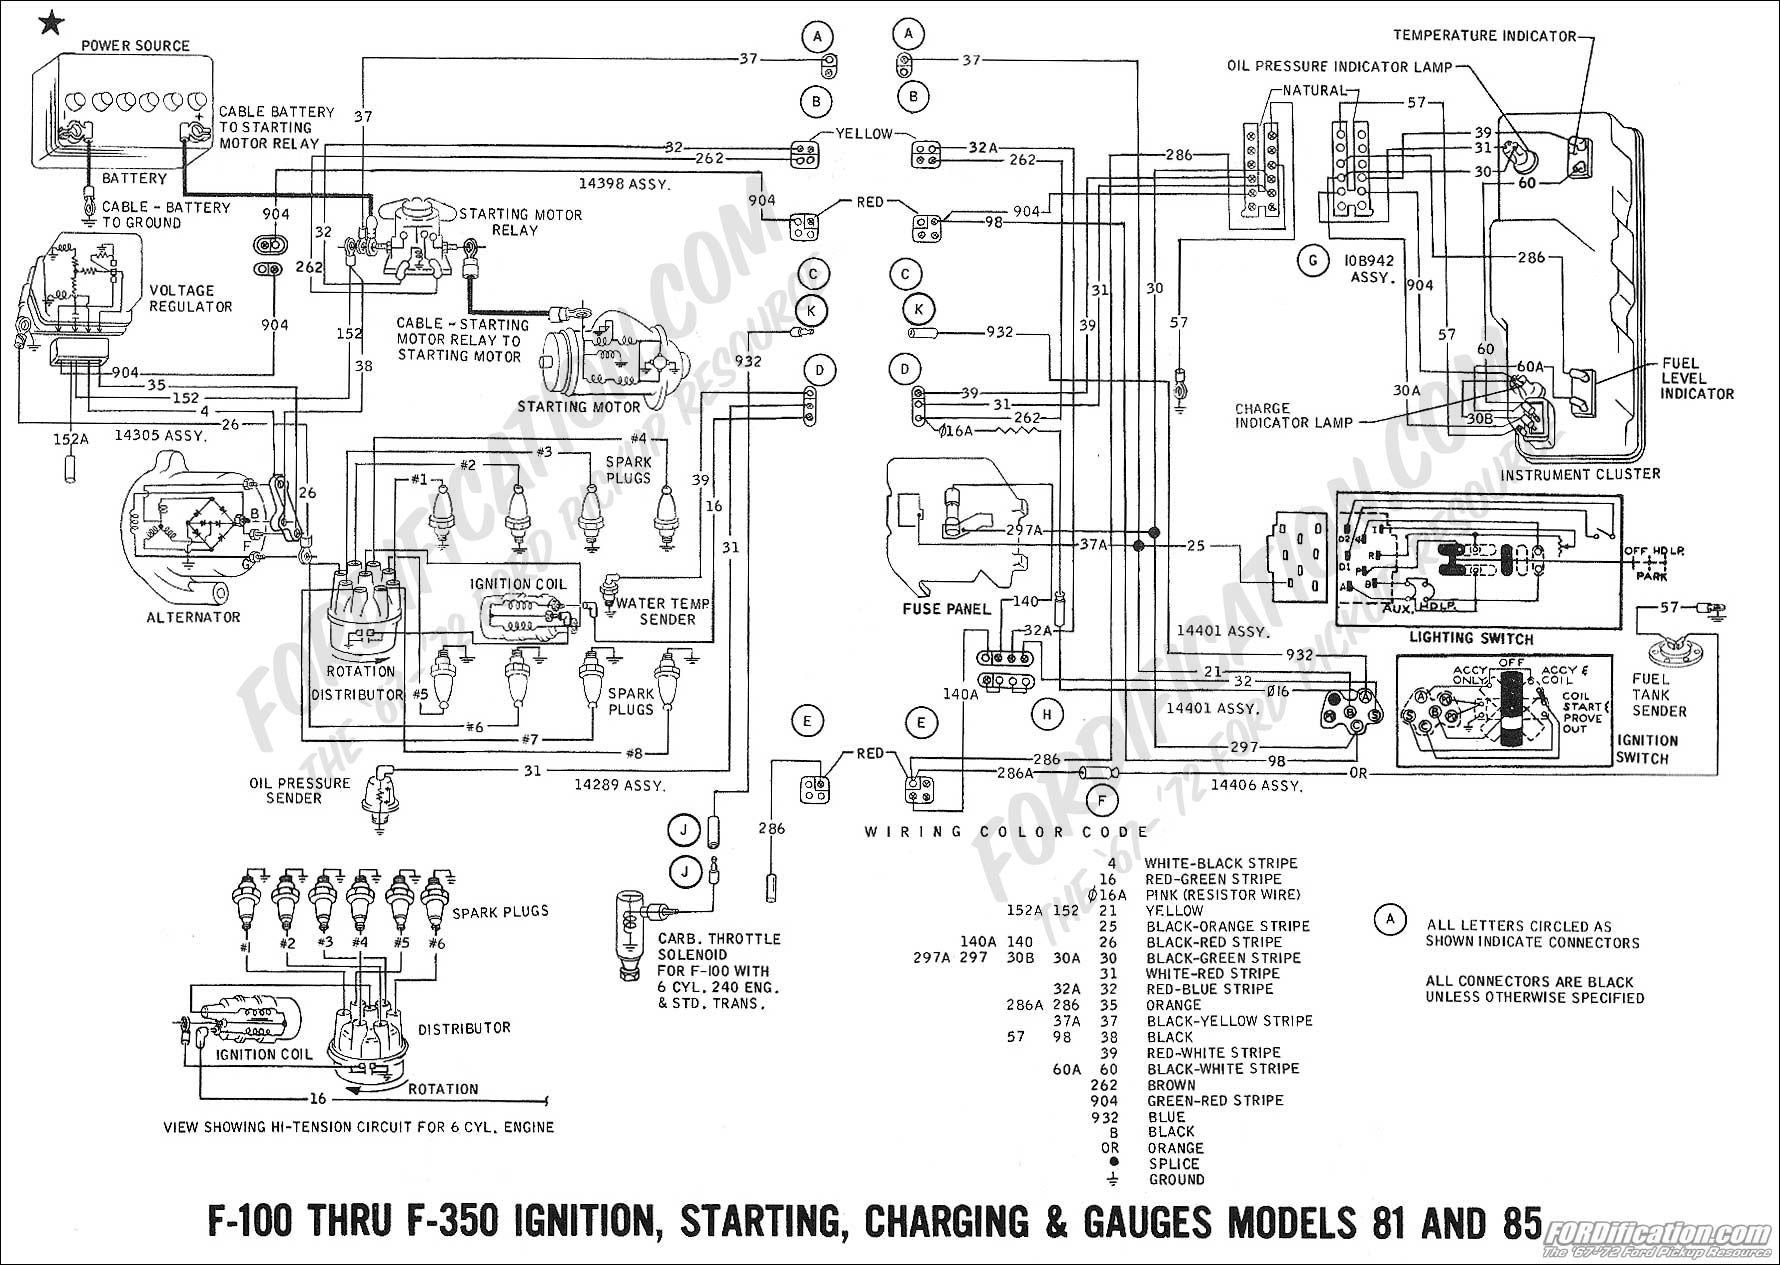 2002 Ford F150 Engine Diagram Well F 350 Wiring 1968 1998 150 Dash Fuse Box Chevrolet F100 Of